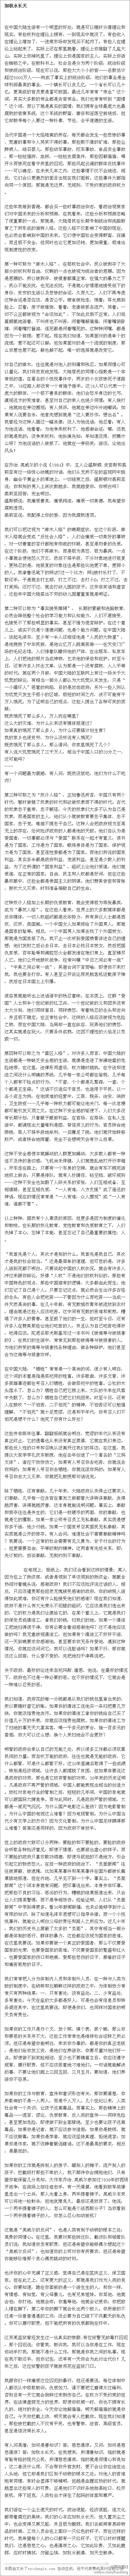 English version: http://tealeafnation.com/2012/07/translation-one-authors-plea-for-a-gentler-china/